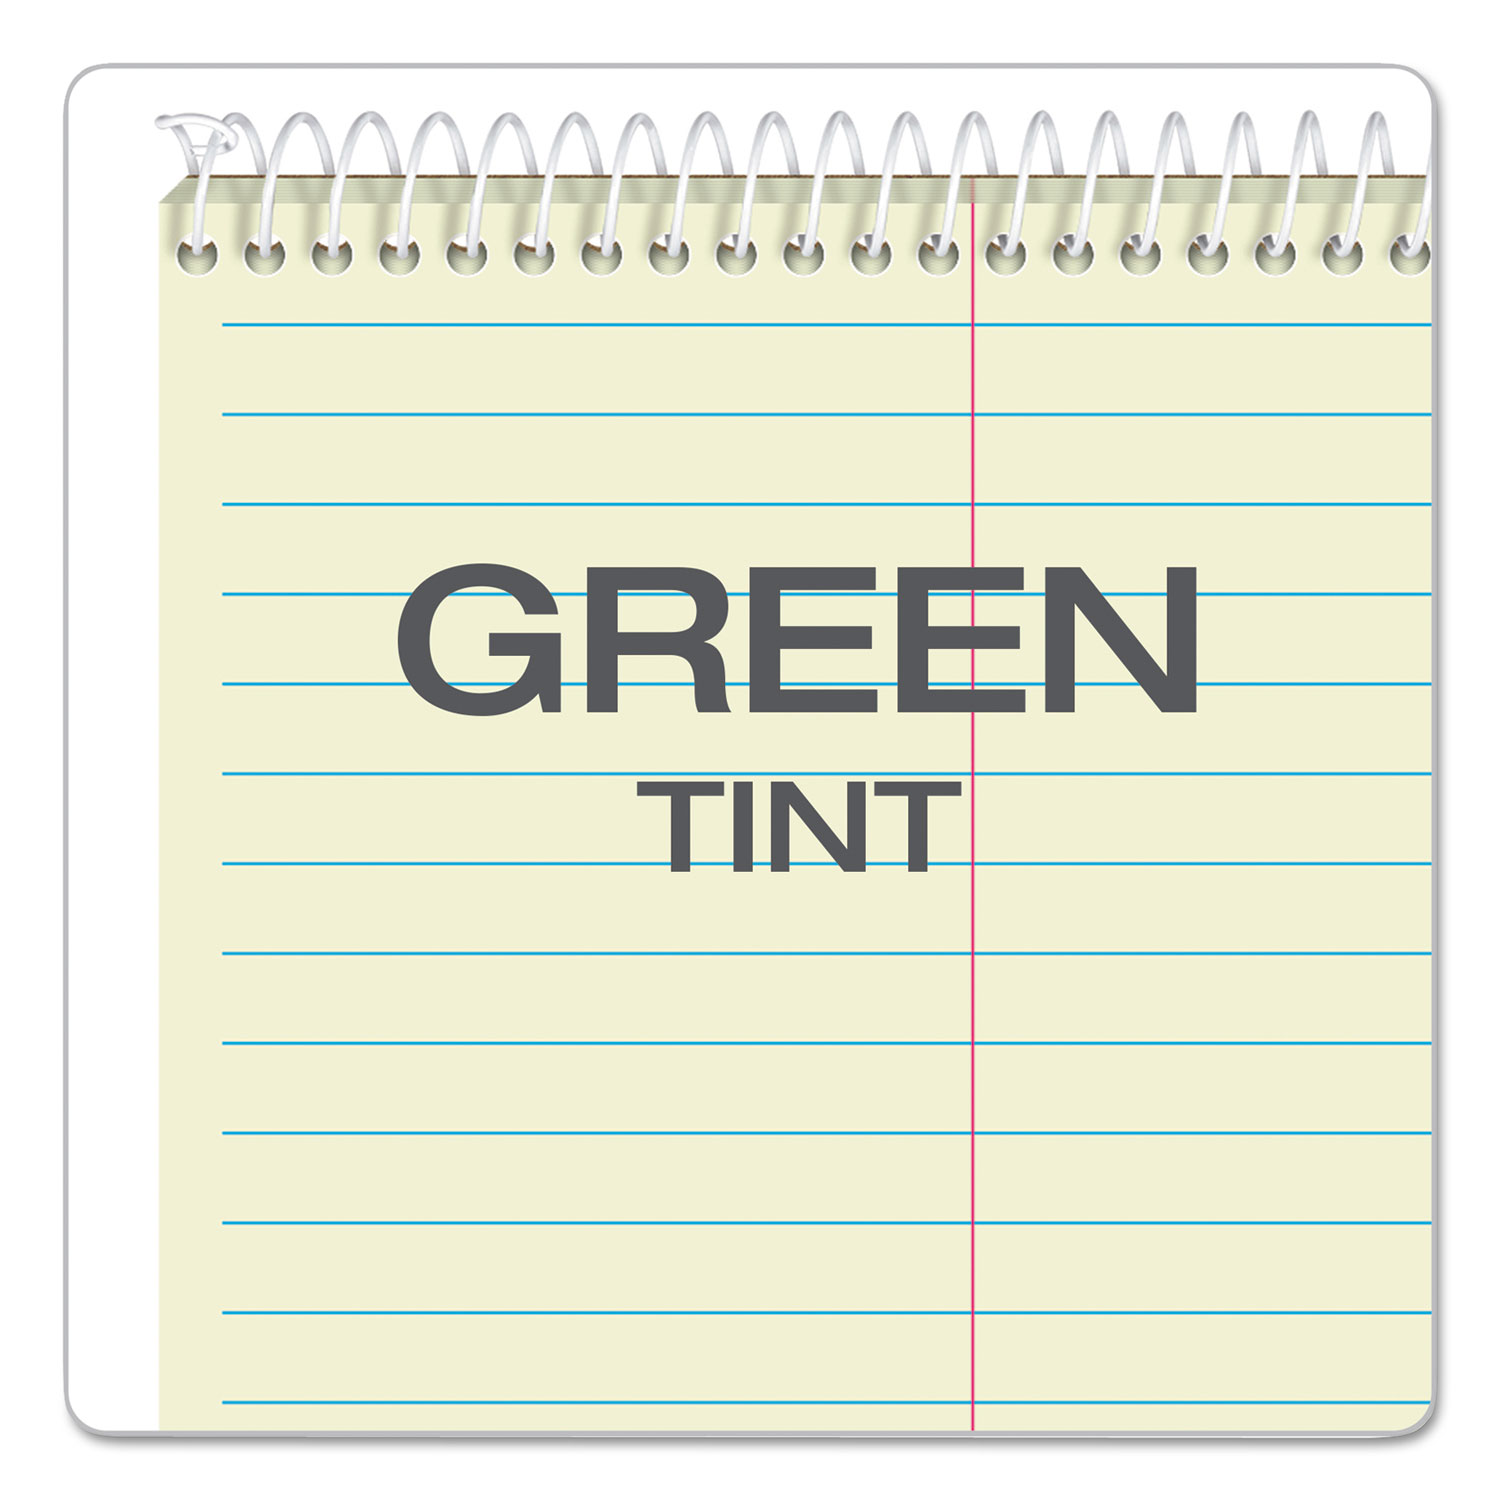 New Version Assorted Color Covers Green Tint Paper Steno Books 80 Sheets 6 x 9 Gregg Rule 80221 4 Pack